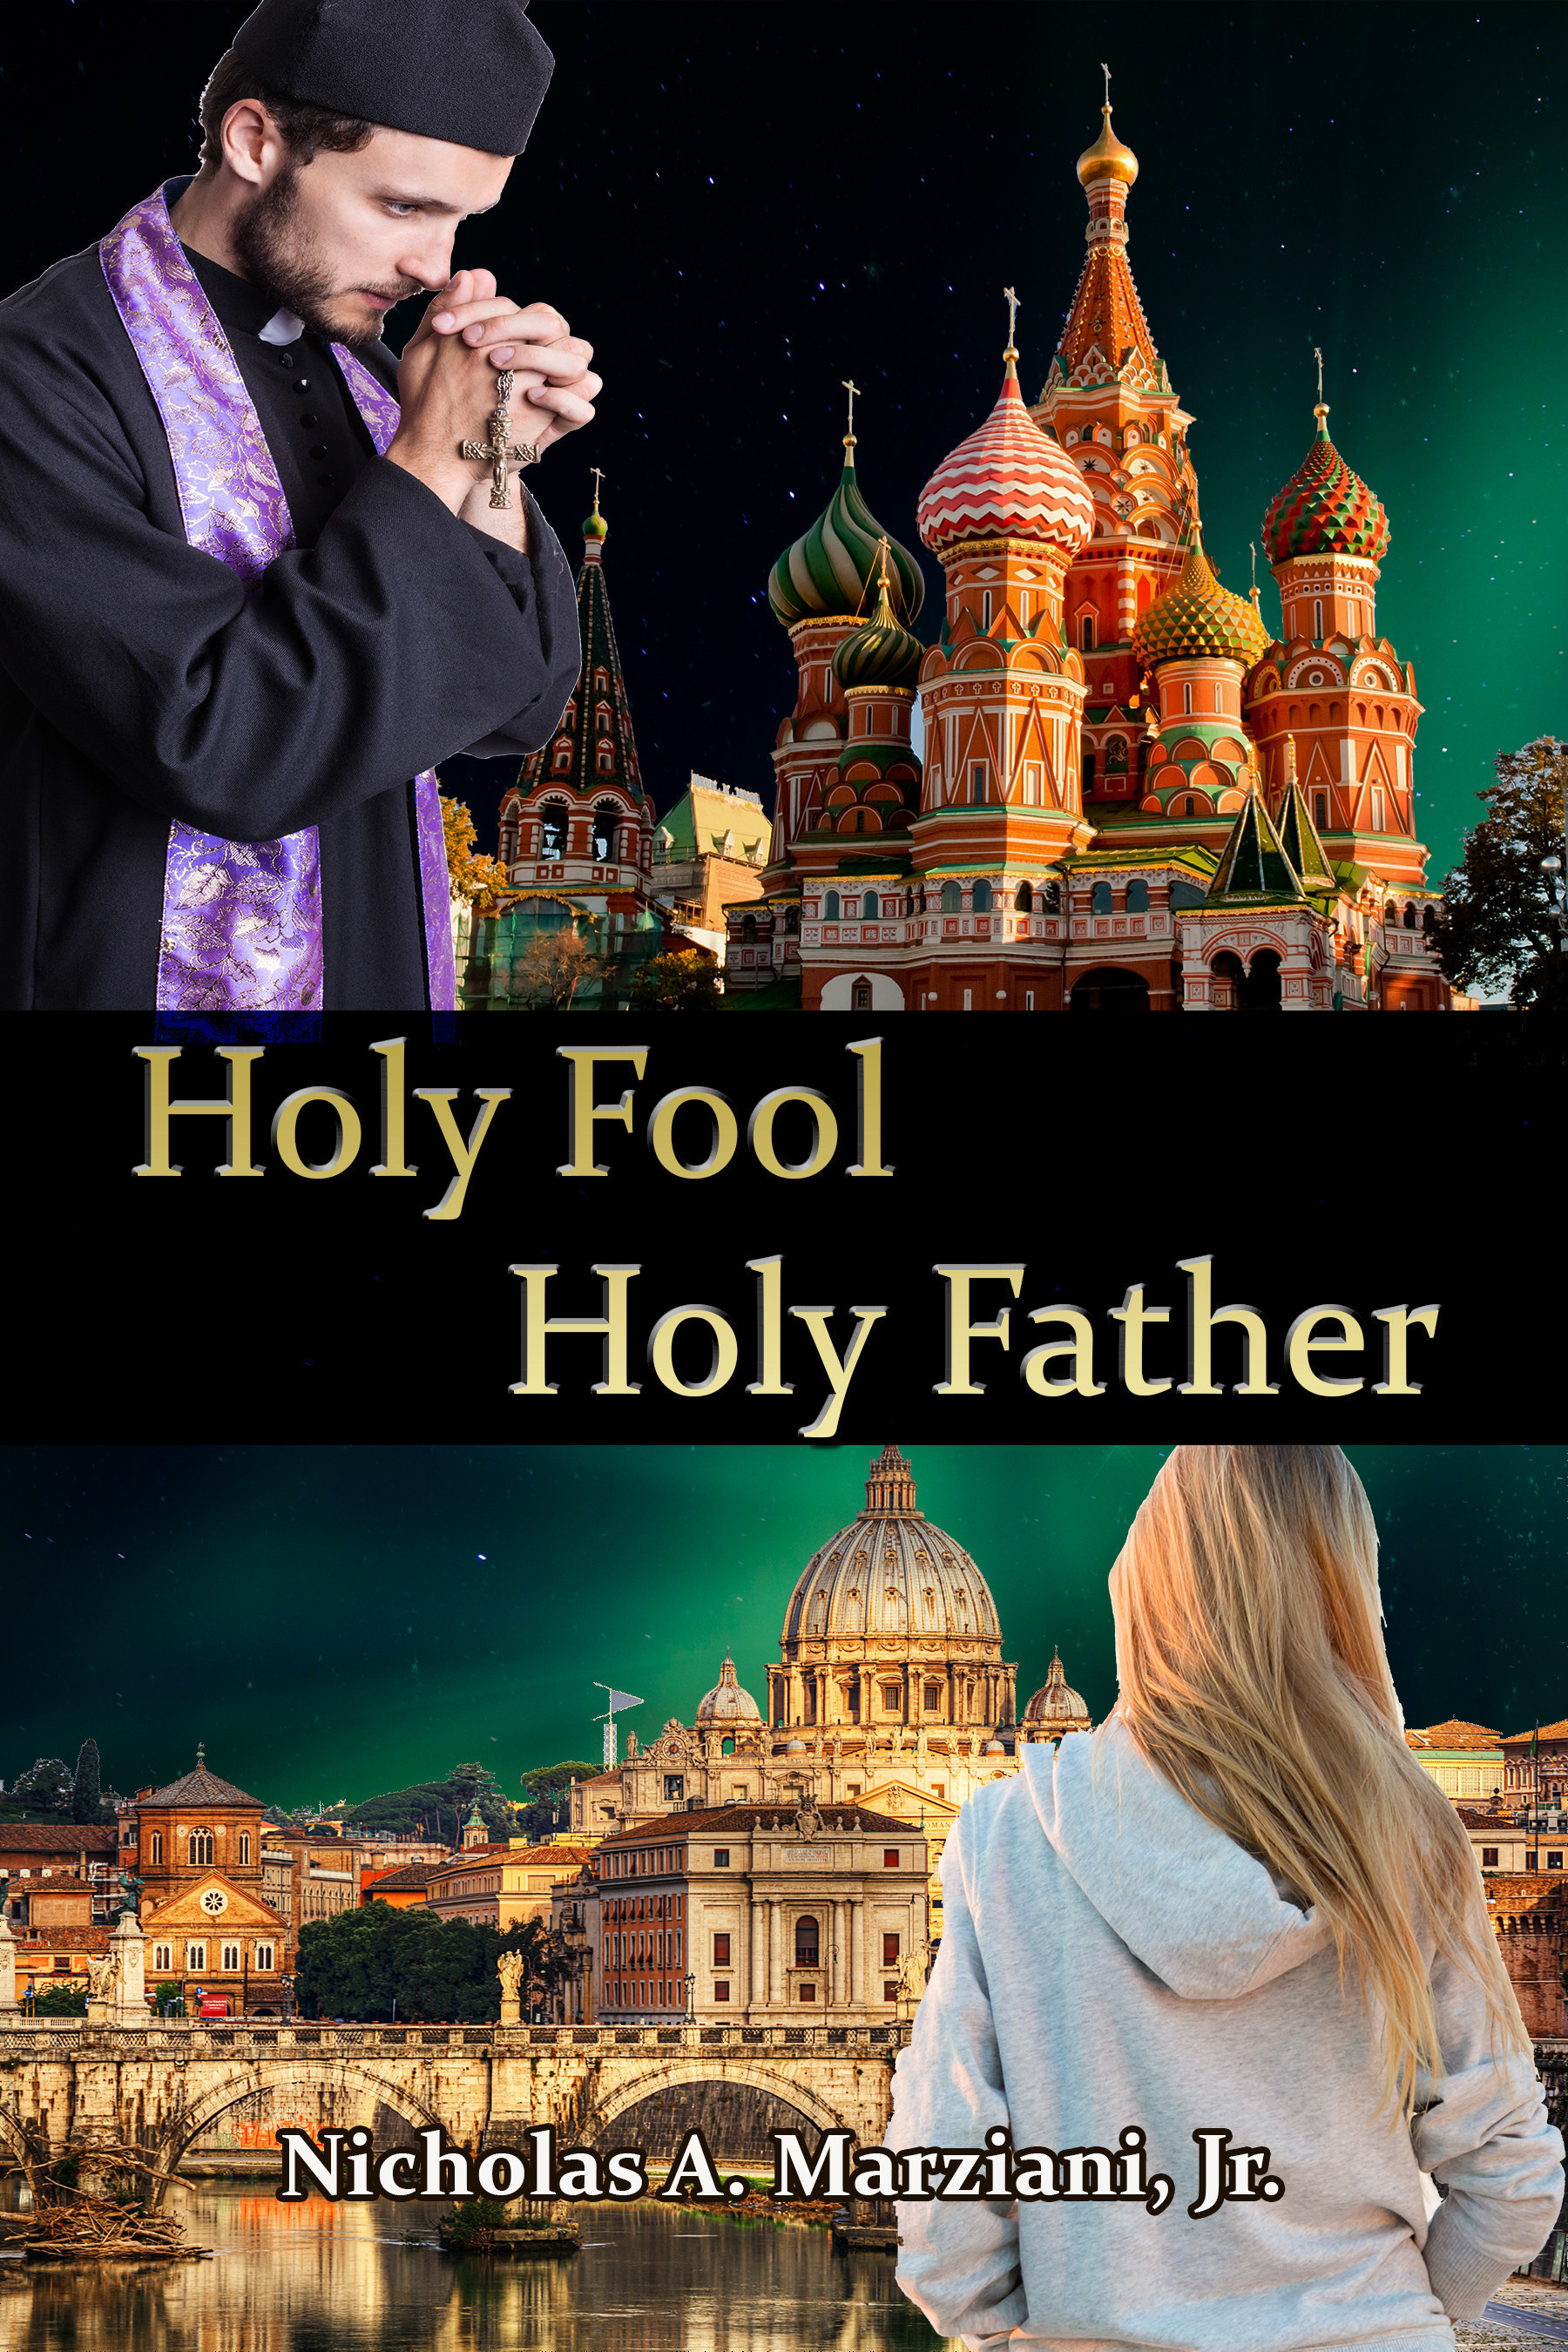 New Edition of Holy Fool, Holy Father - the Novel to be available December 1, 2015